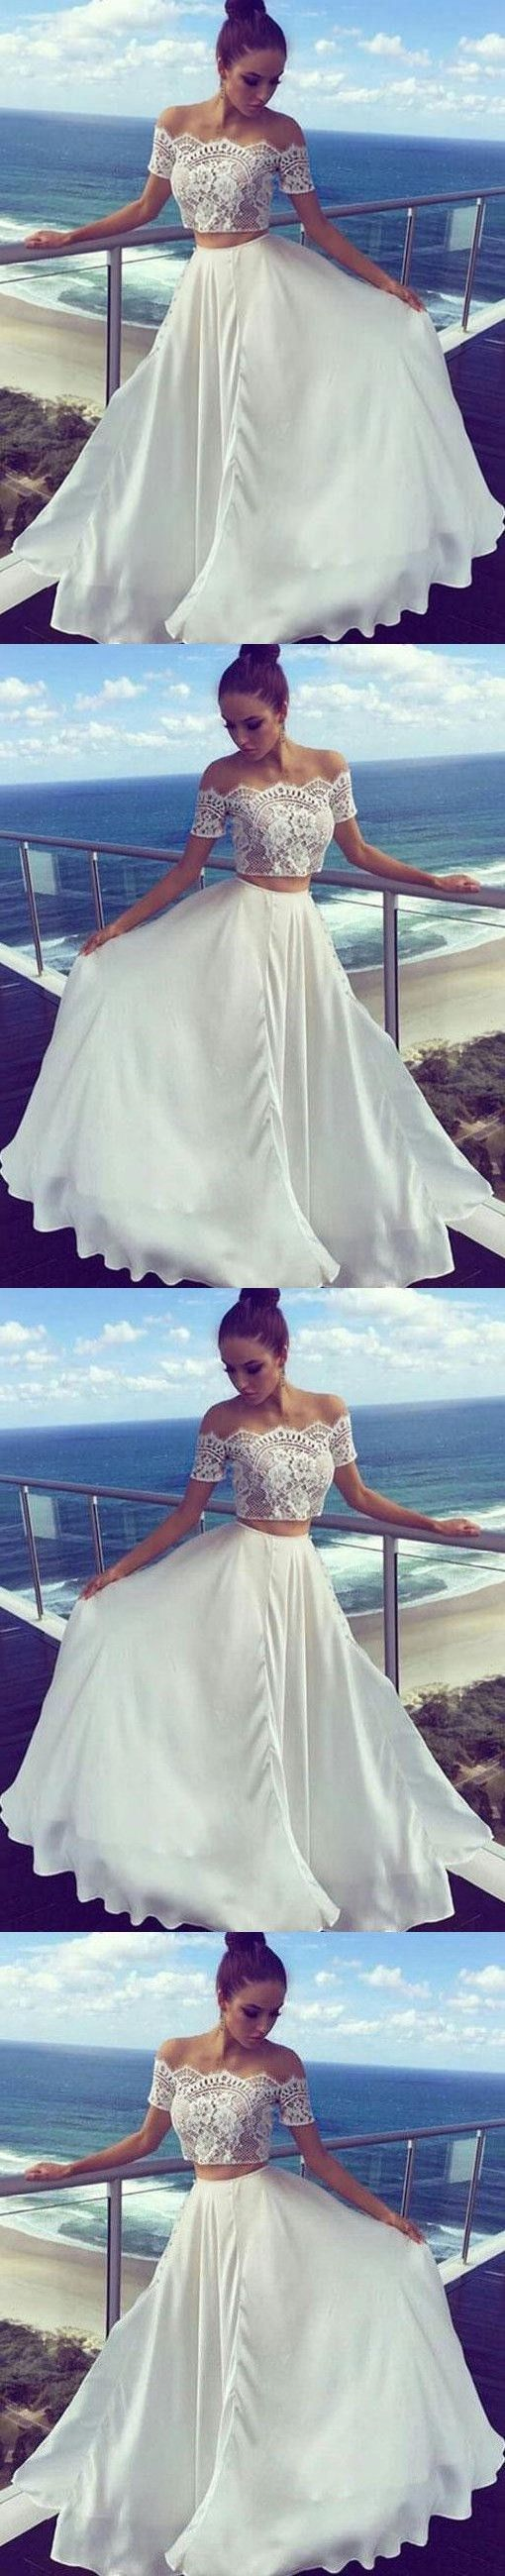 Two Pieces Off The Shoulder Prom Dresses,Long Prom Dresses,Cheap Prom Dresses, Evening Dress Prom Gowns, Formal Women Dress,Prom Dress,,M000140#prom #promdress #promdresses #longpromdress #promgowns #promgown #2018style #newfashion #newstyles #2018newprom#eveninggowns#twopiece#offshoulder#laceup#cheapprom#formaldress